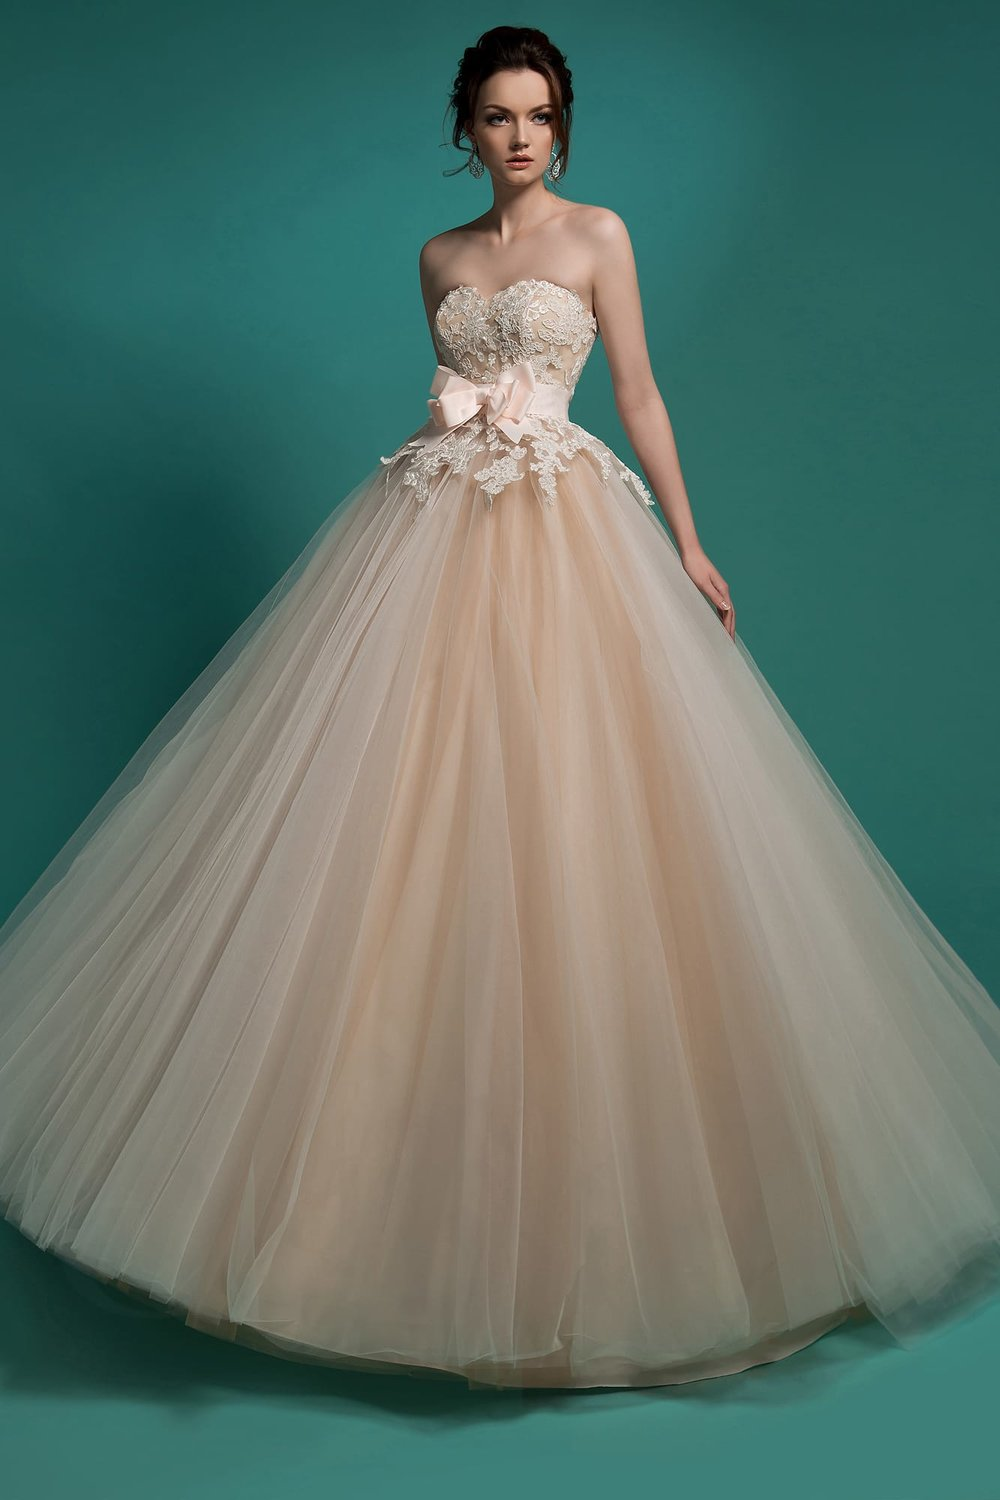 ARLETTE wedding dress $800